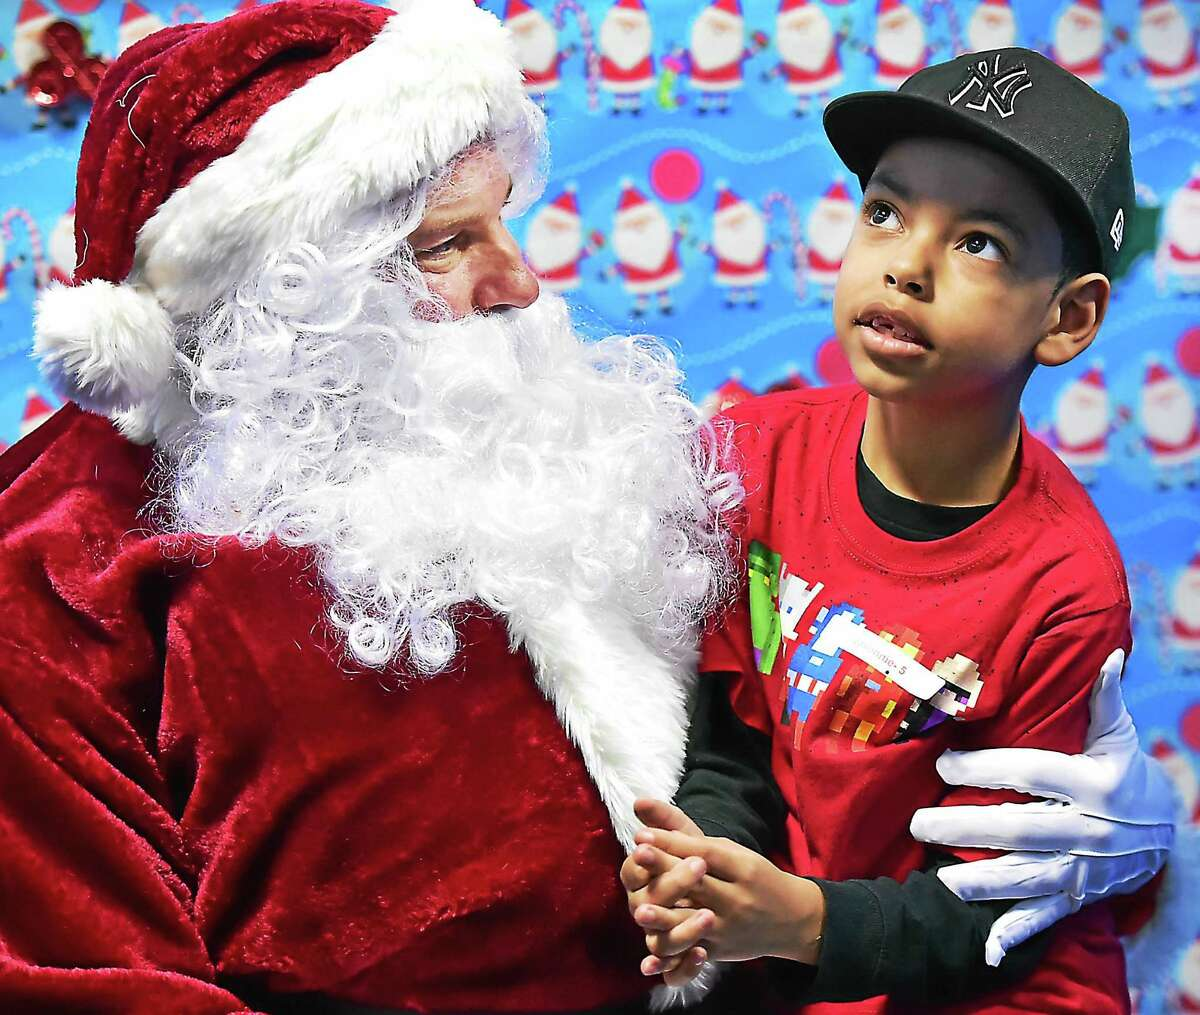 (Catherine Avalone - New Haven Register) Javonnie Rodriguez, 7, of West Haven sits on the lap of a